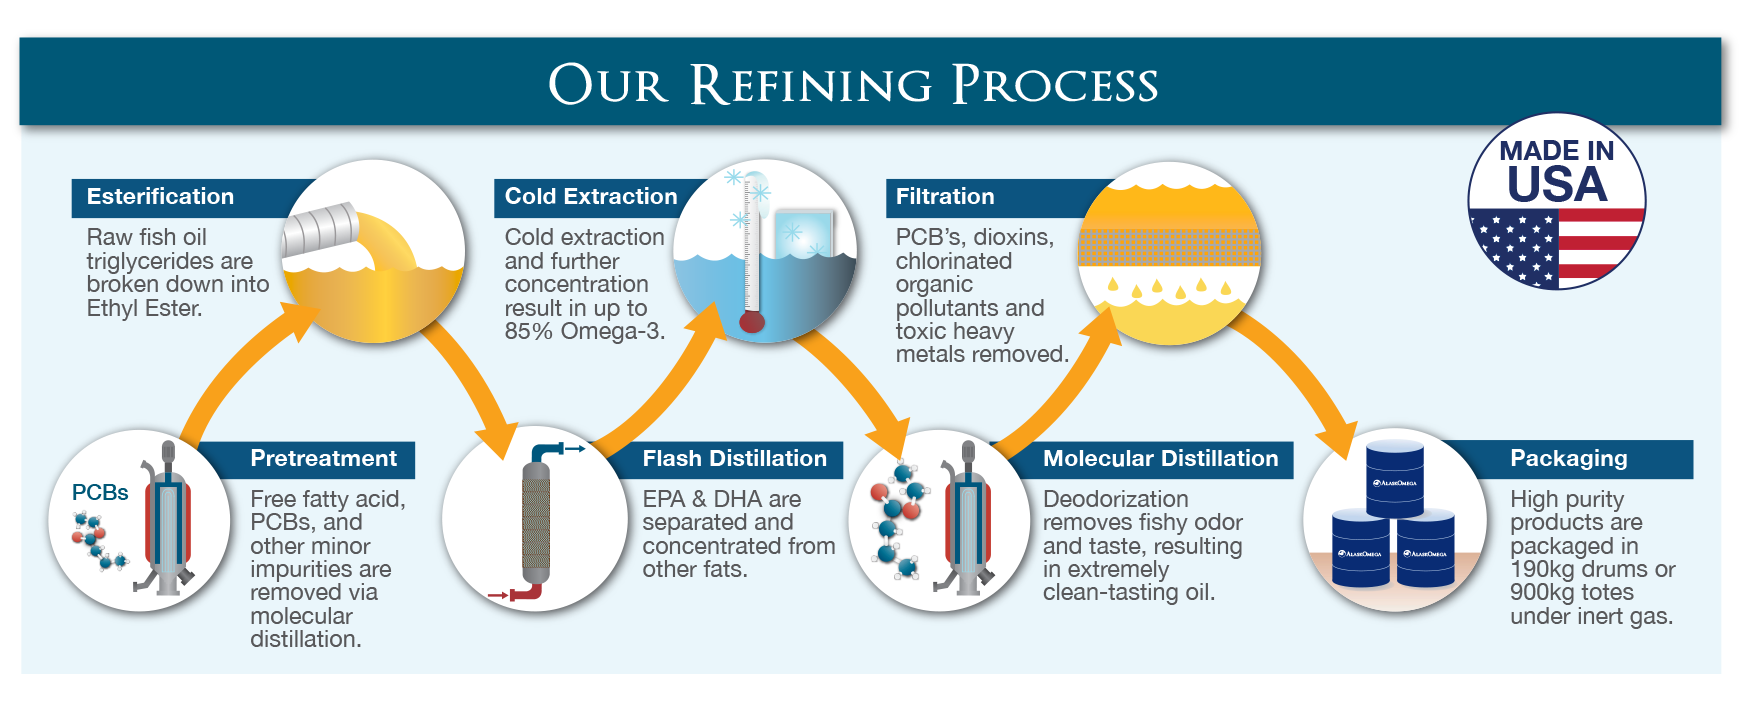 Our Refining Process